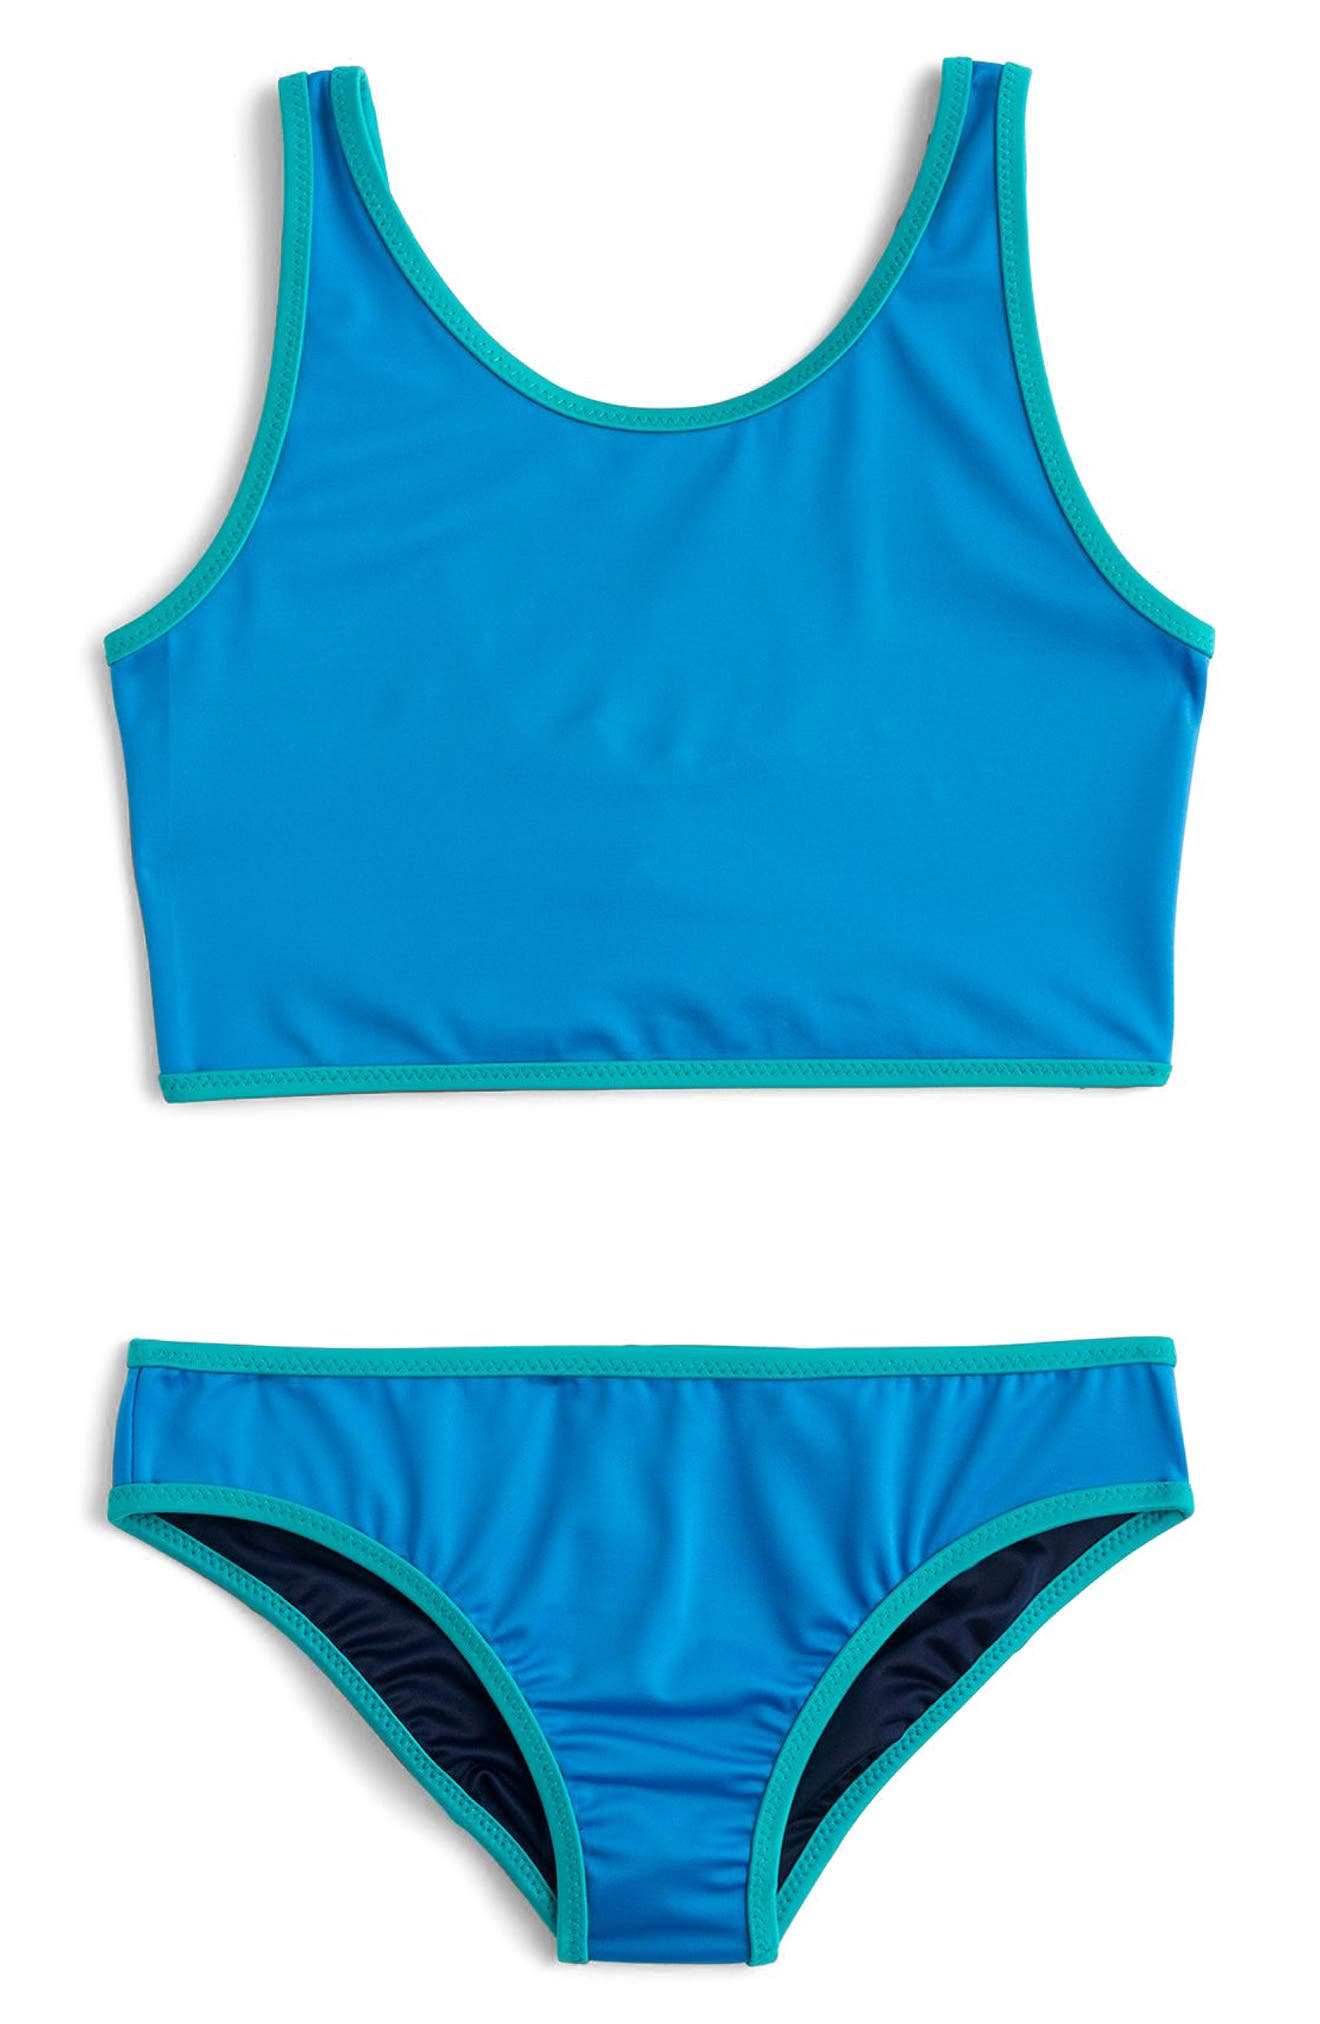 Main Image - crewcuts by J.Crew Reversible Two-Piece Swimsuit (Toddler Girls, Little Girls & Big Girls)